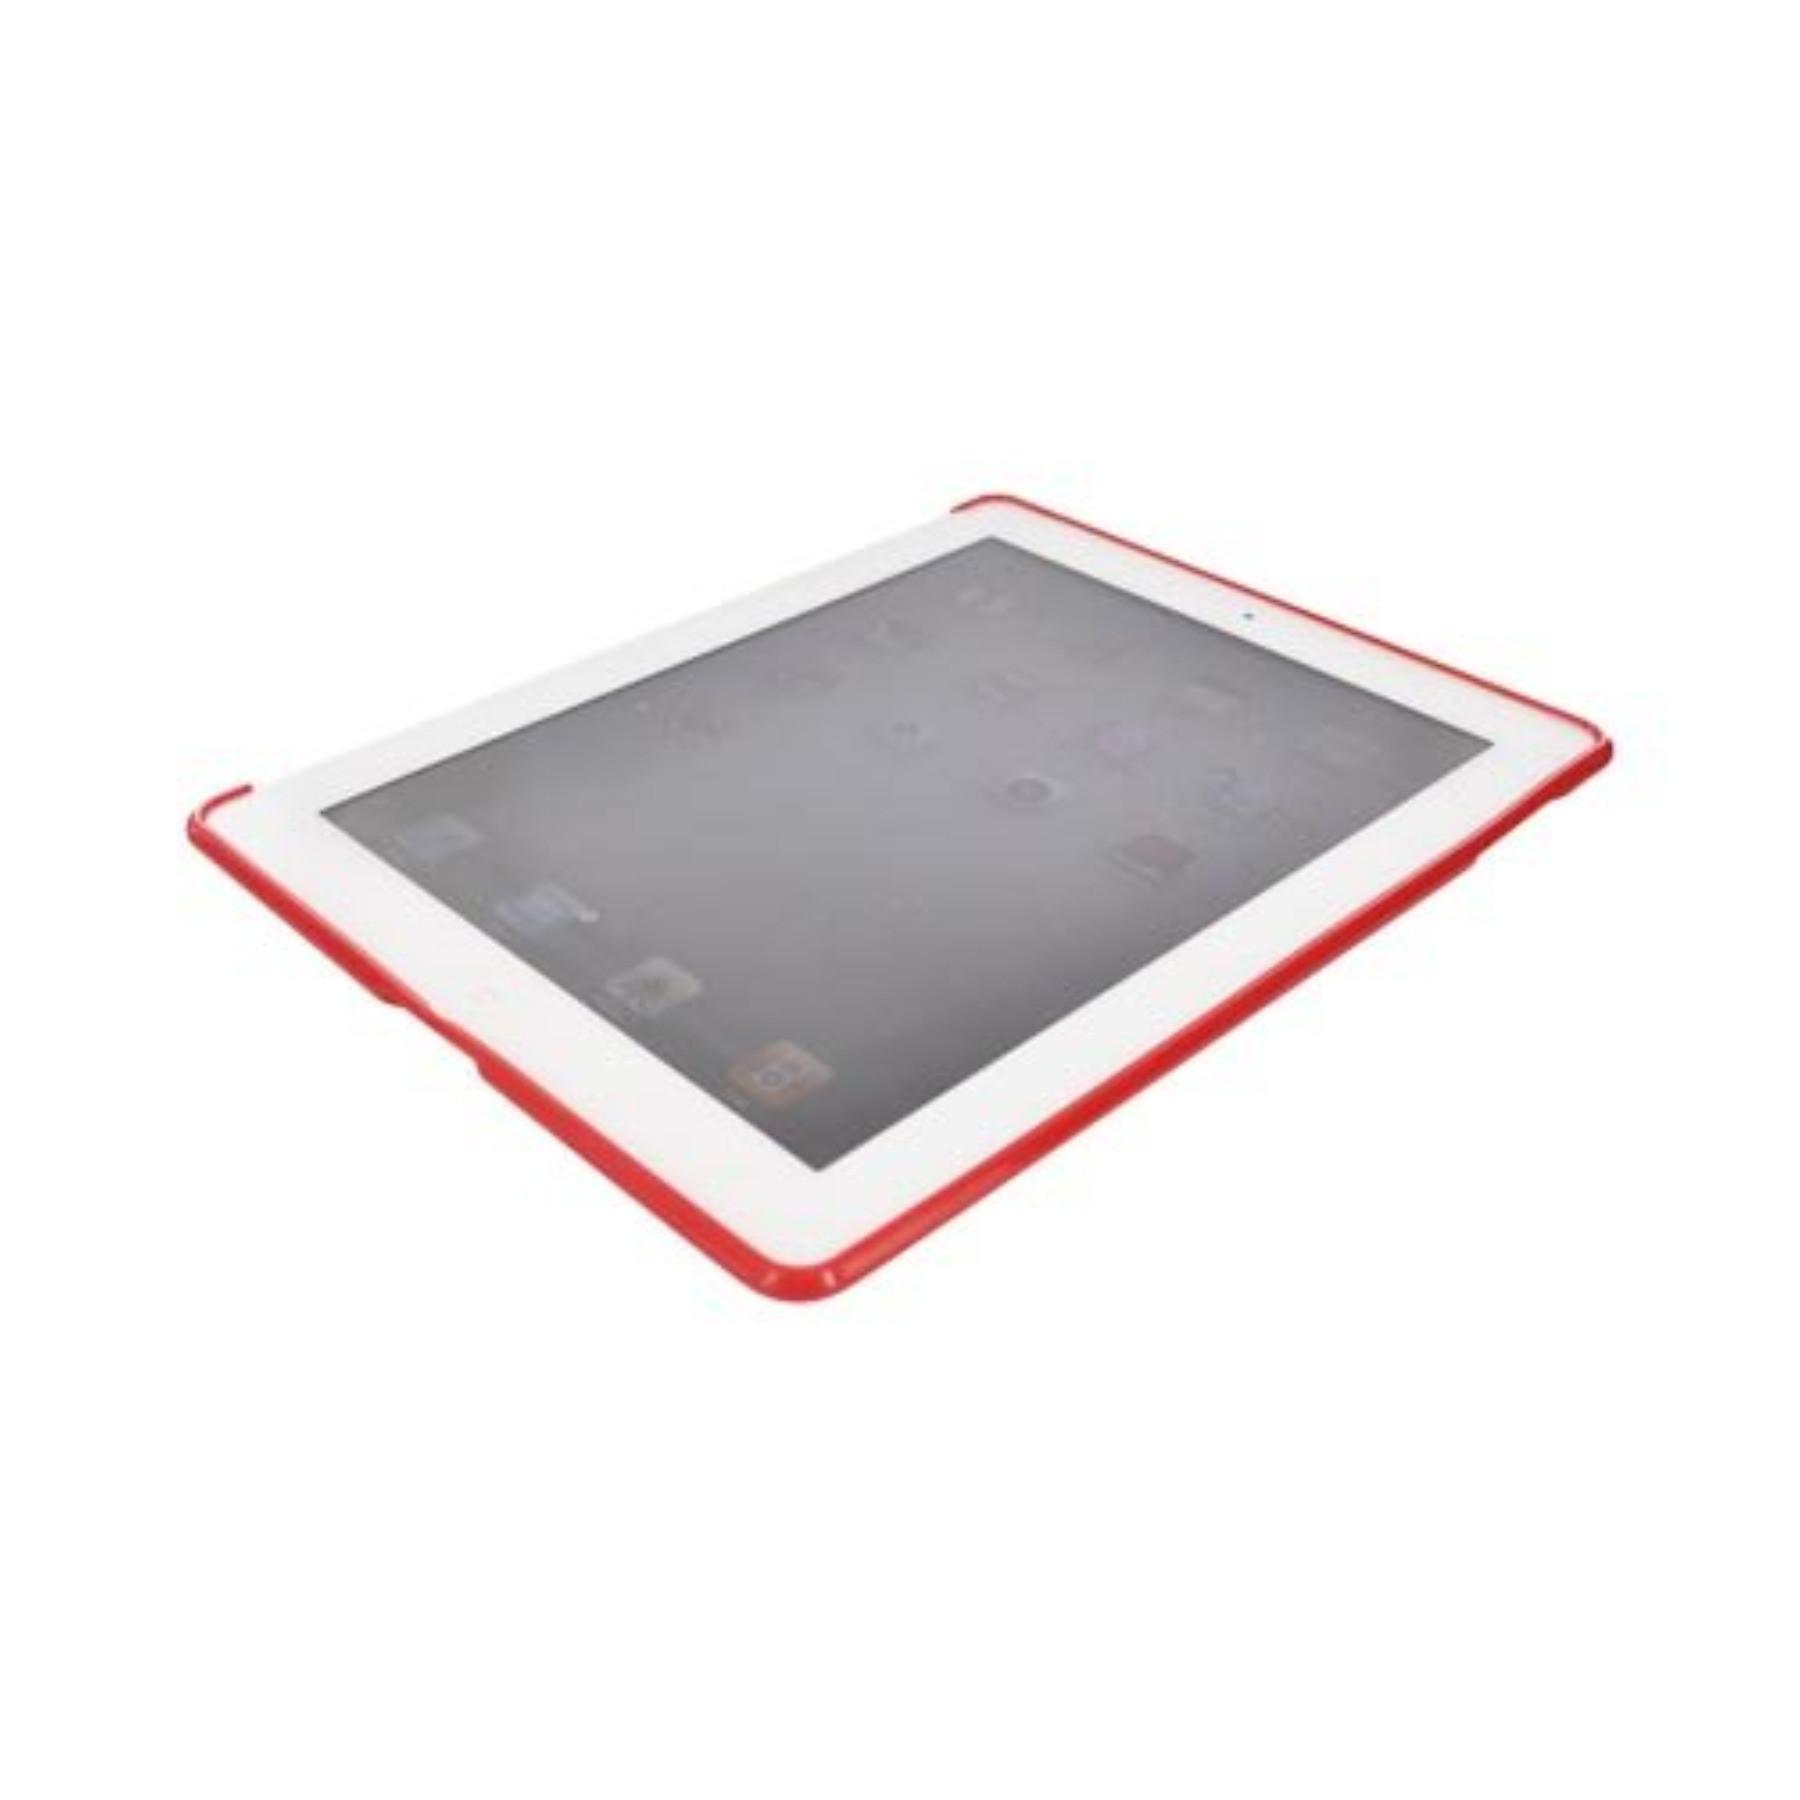 Red Apple Ipad Tpu Gel Case Cover Anti Slip Supports